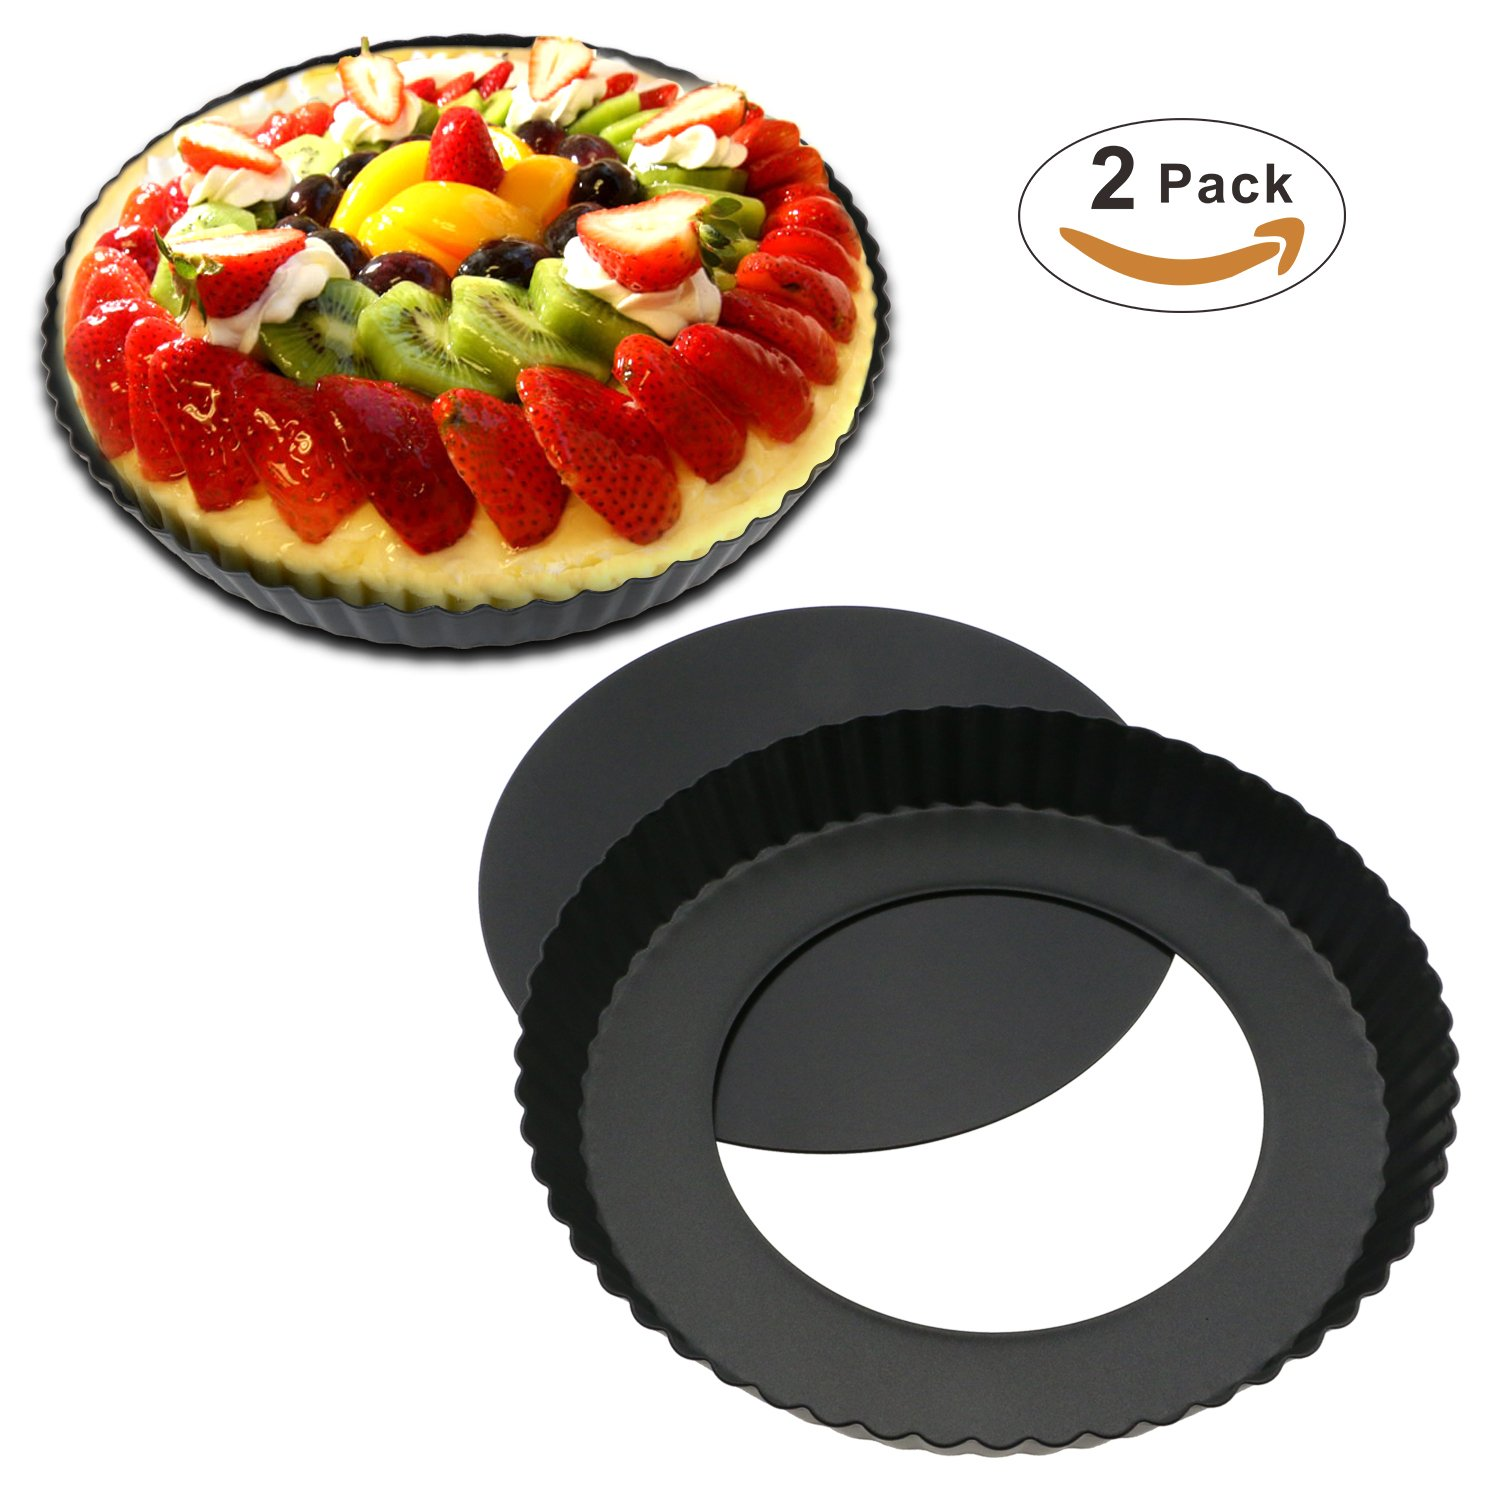 TedGem 2 Pack 8.8 Inches Non-Stick Removable Loose Bottom Quiche Tart Pan Tart  sc 1 st  Amazon.com : temptations pie plate - pezcame.com